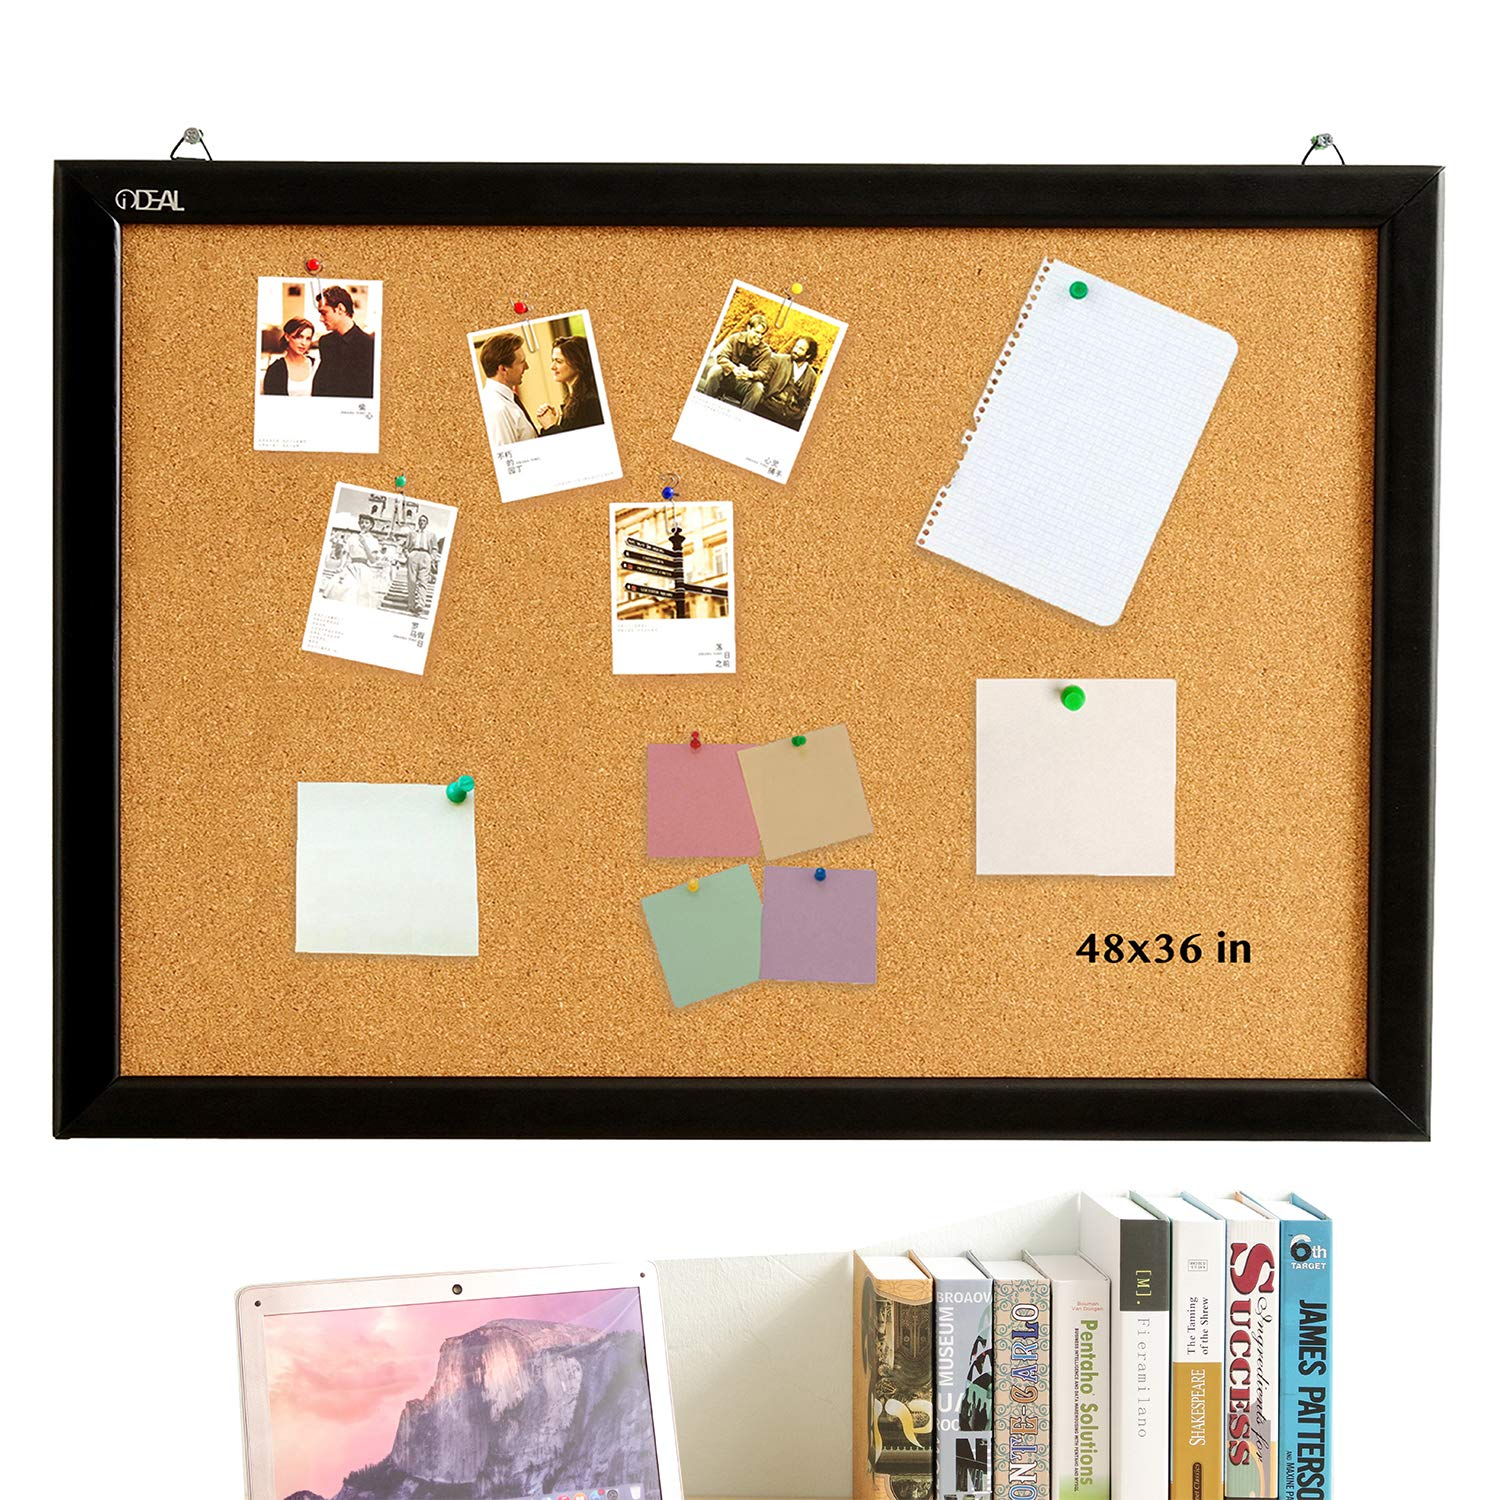 Cork Board Bulletin Board 48 x 36 Inch, 100% Wood Frame Brazil Imported, Environmental Natural Cork Surface, Mounting Hardware, Push Pins Included by gideal